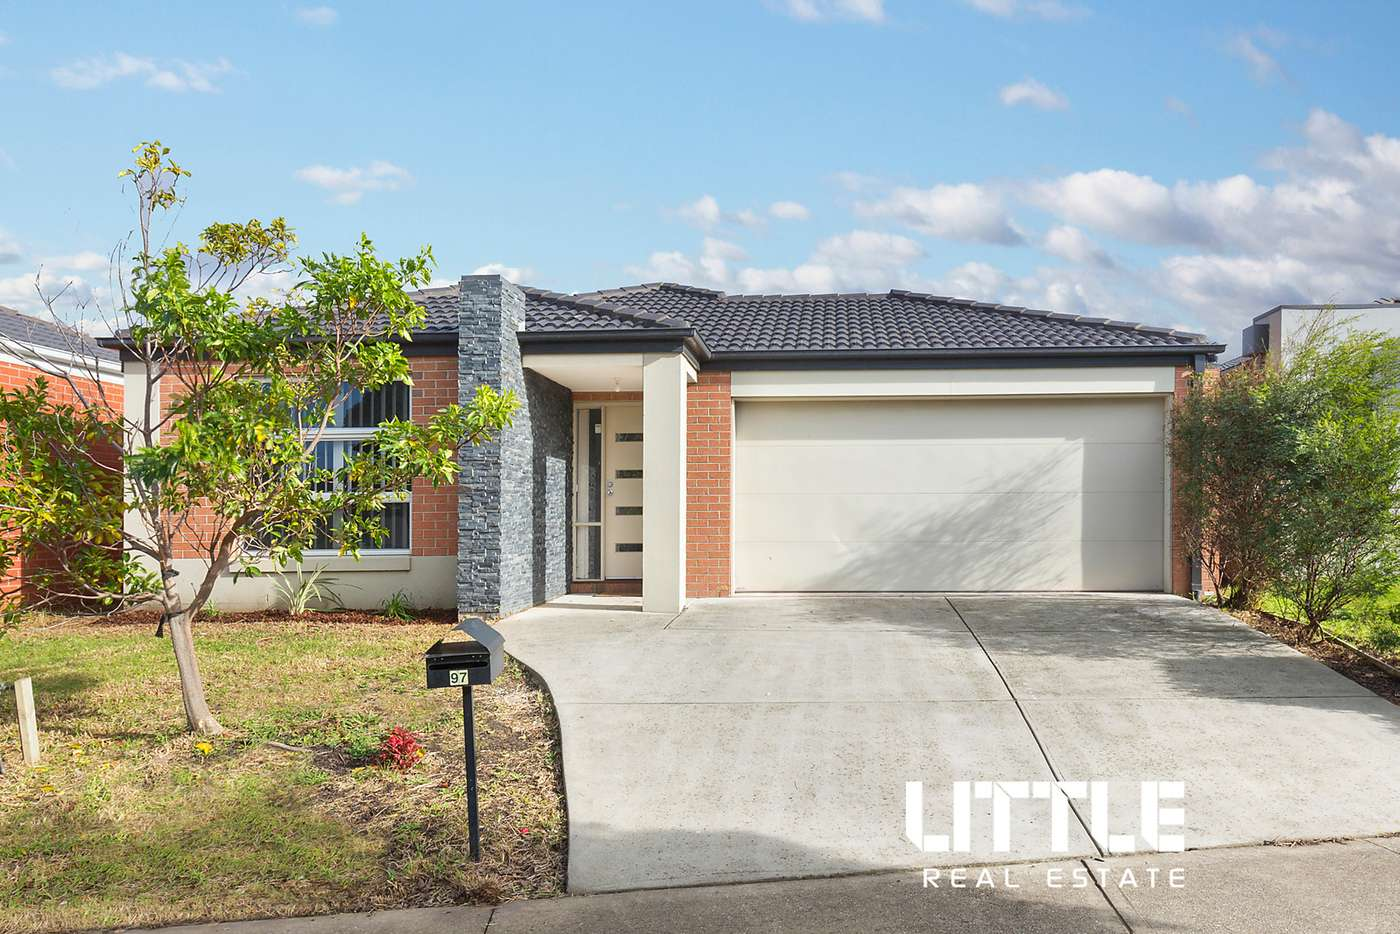 Sixth view of Homely house listing, 97 Henry Road, Pakenham VIC 3810